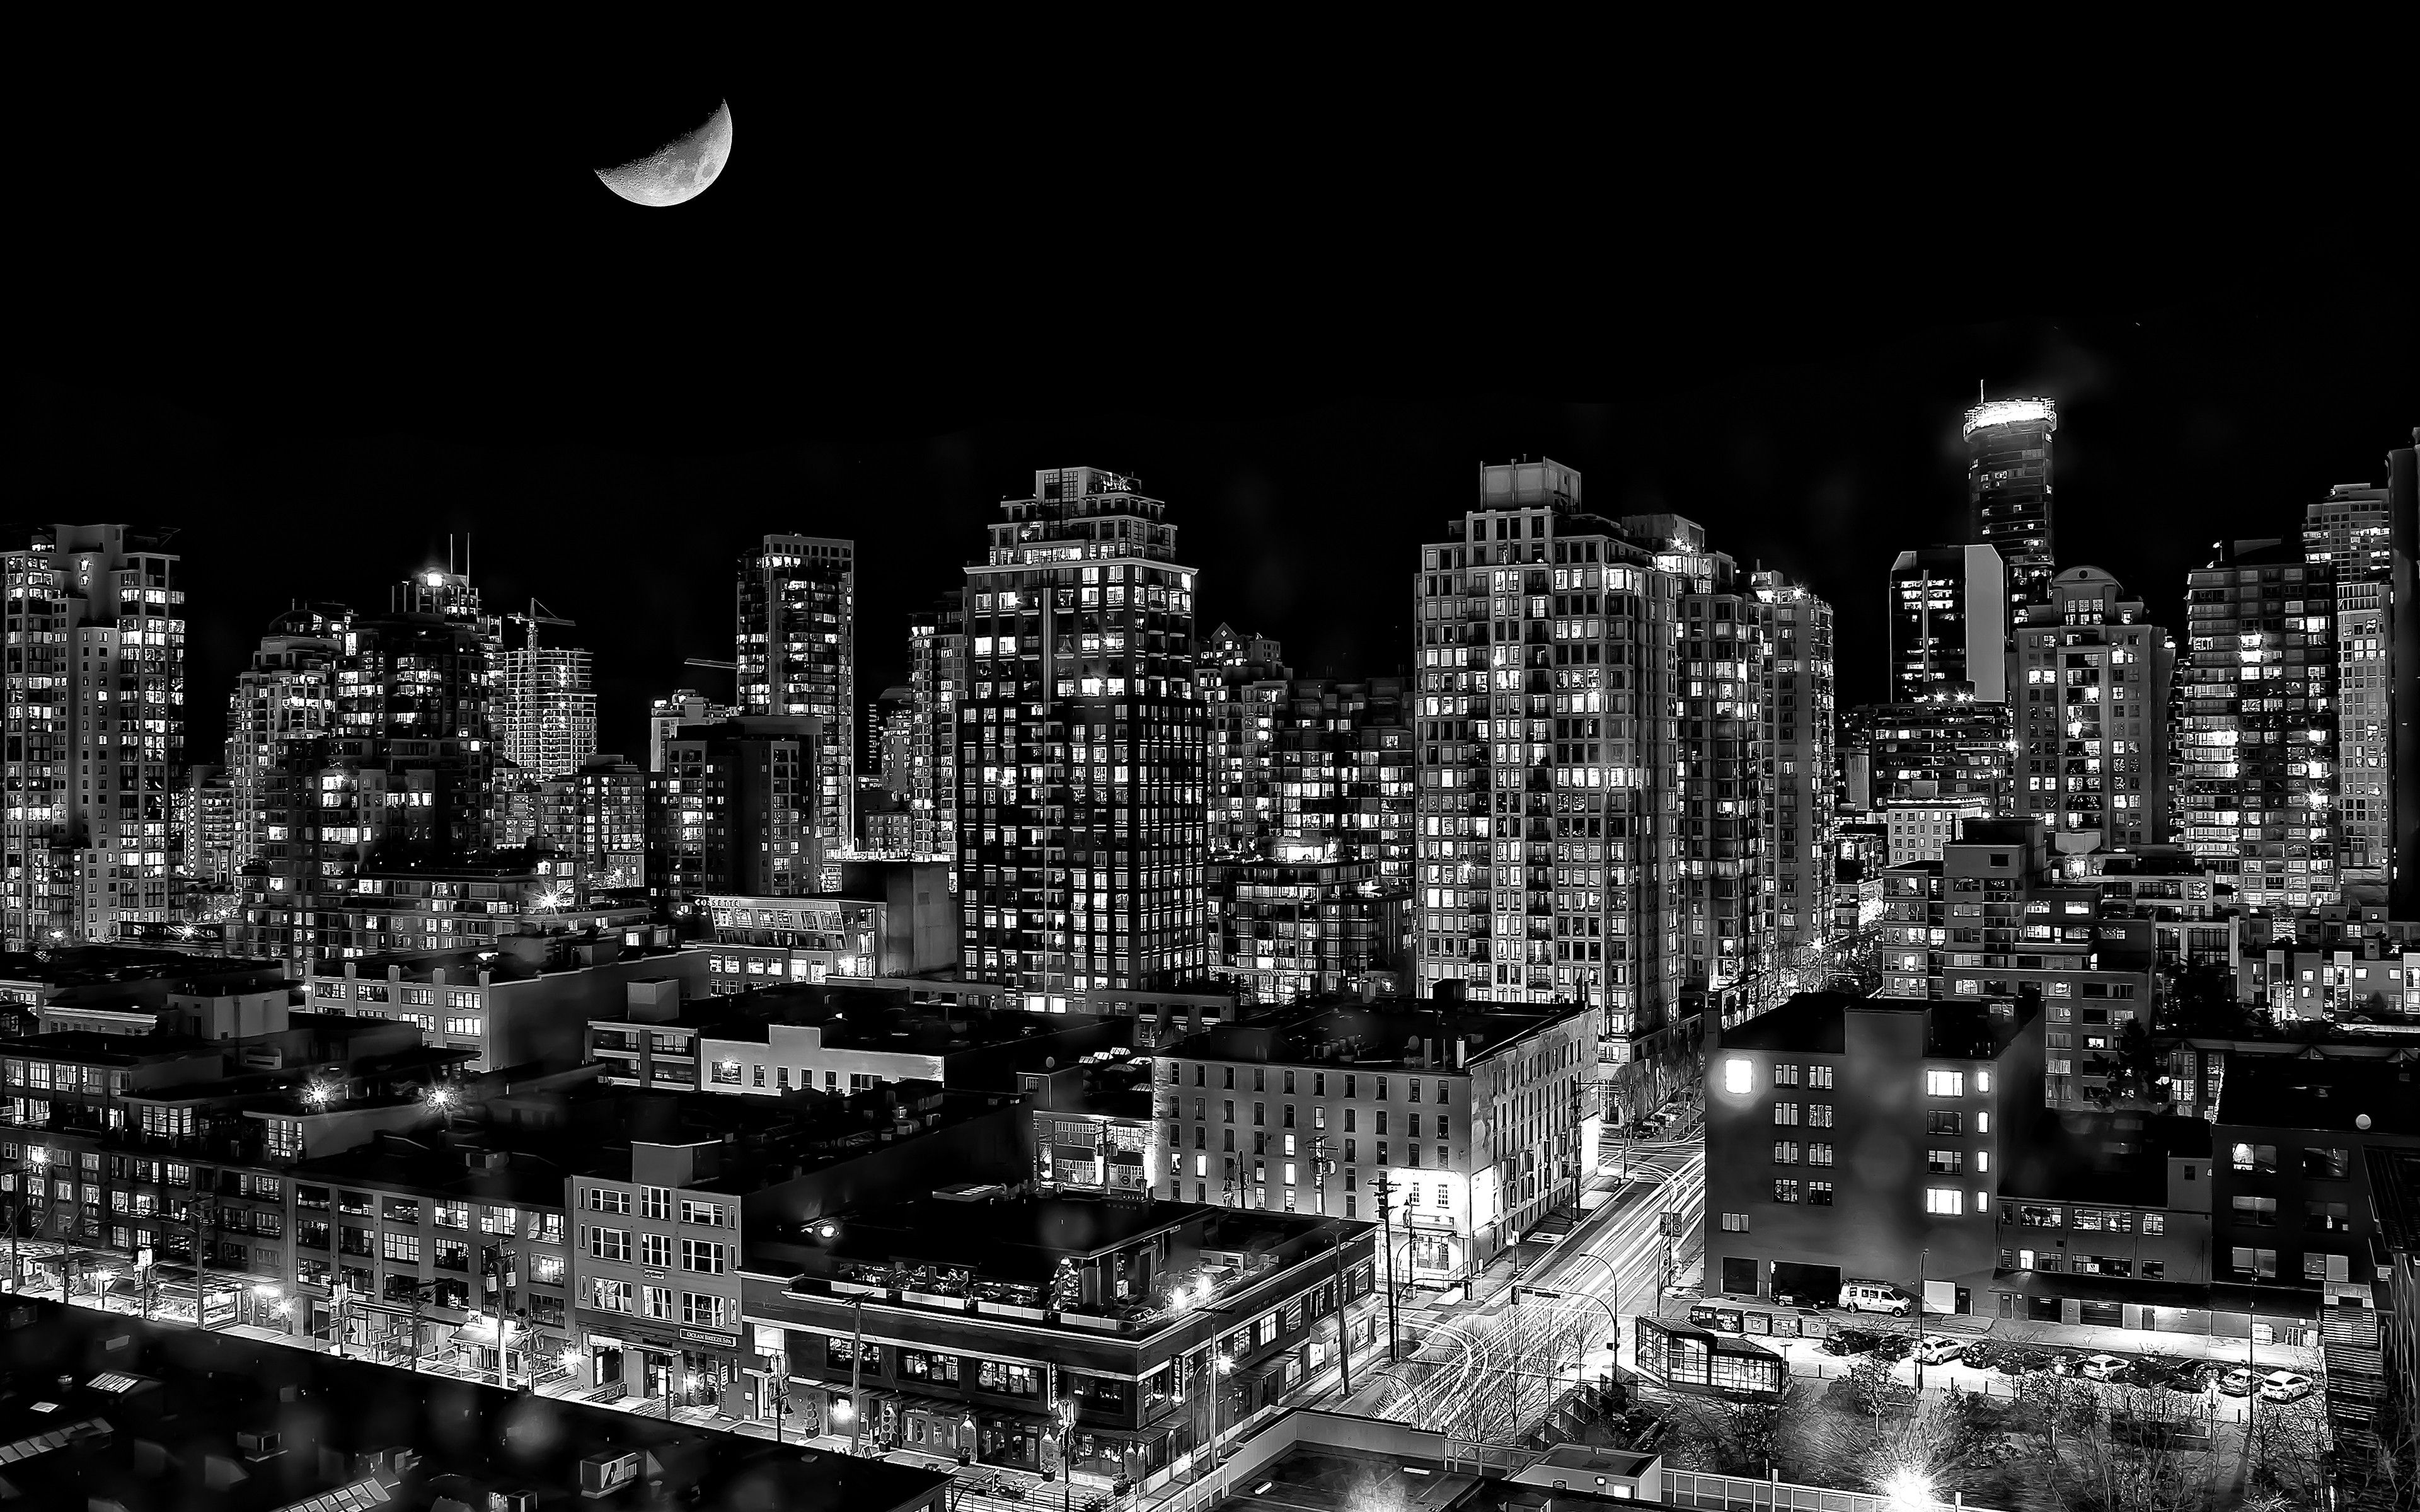 Wallpapers Black And White Cityscapes Night Lights Moon Urban Buildings Canada Vancouve Black And White Landscape Vancouver Wallpaper City Wallpaper